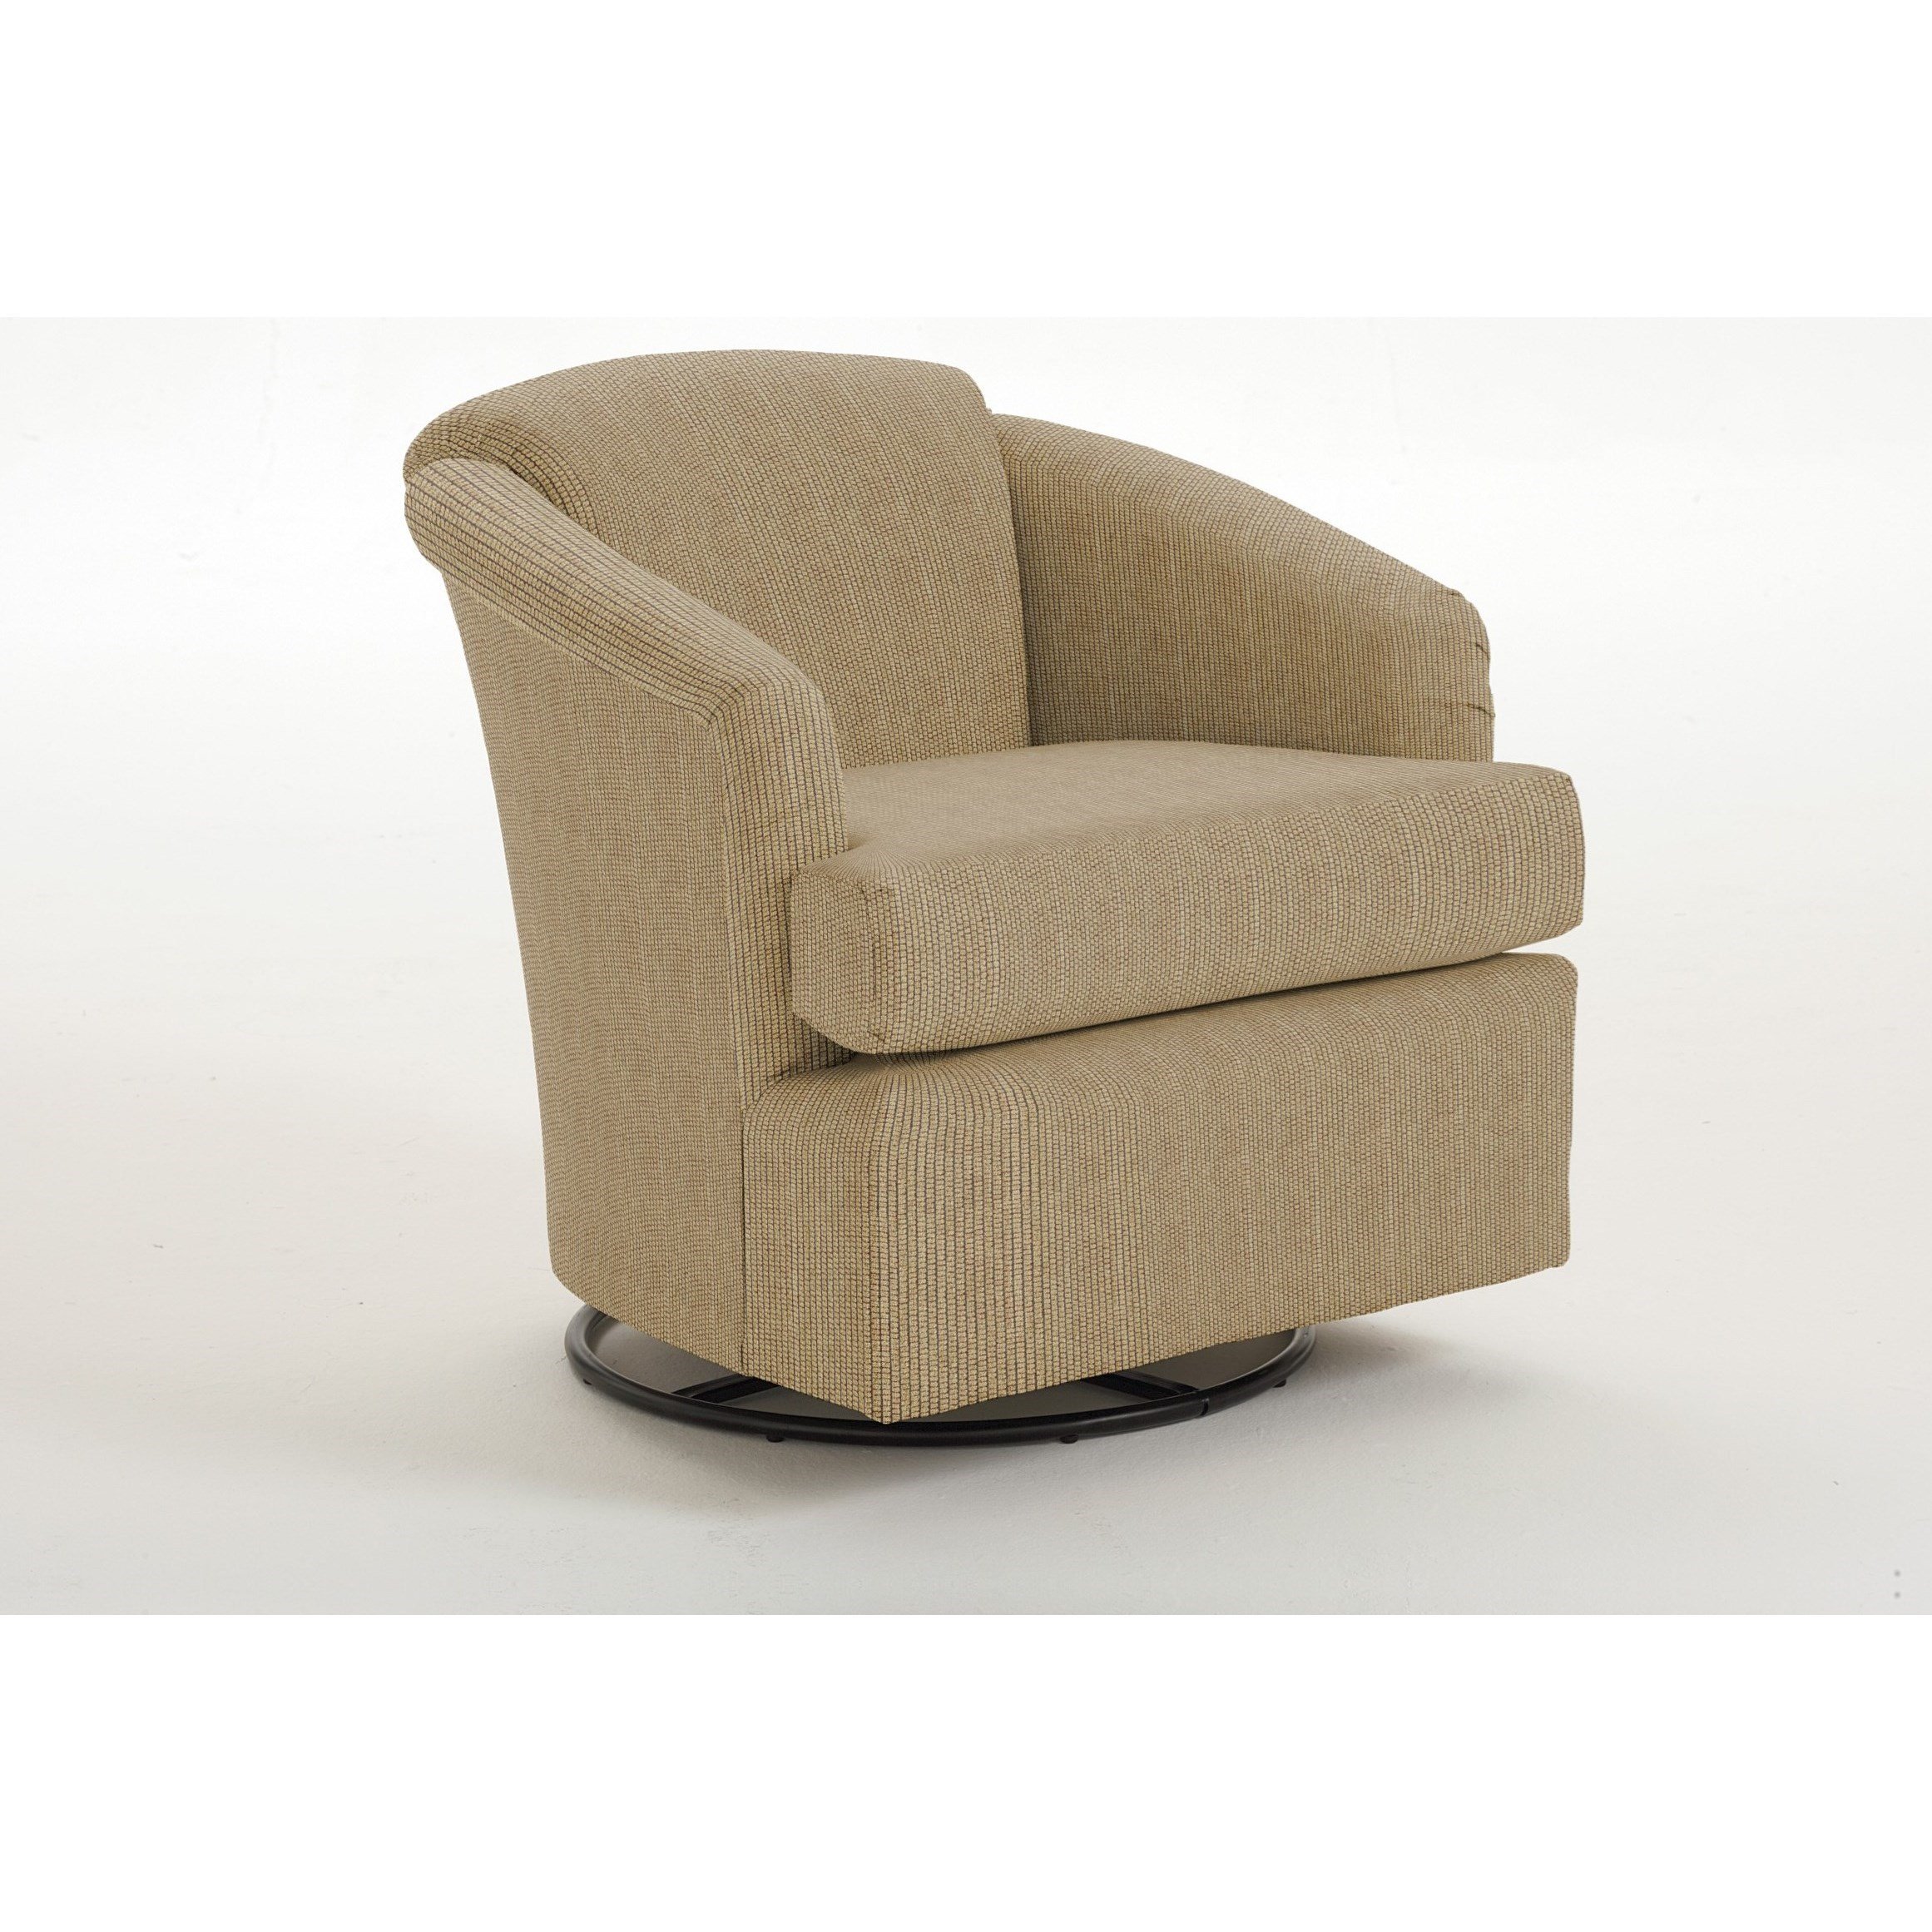 Cass Cass Swivel Chair by Best Home Furnishings at Steger's Furniture